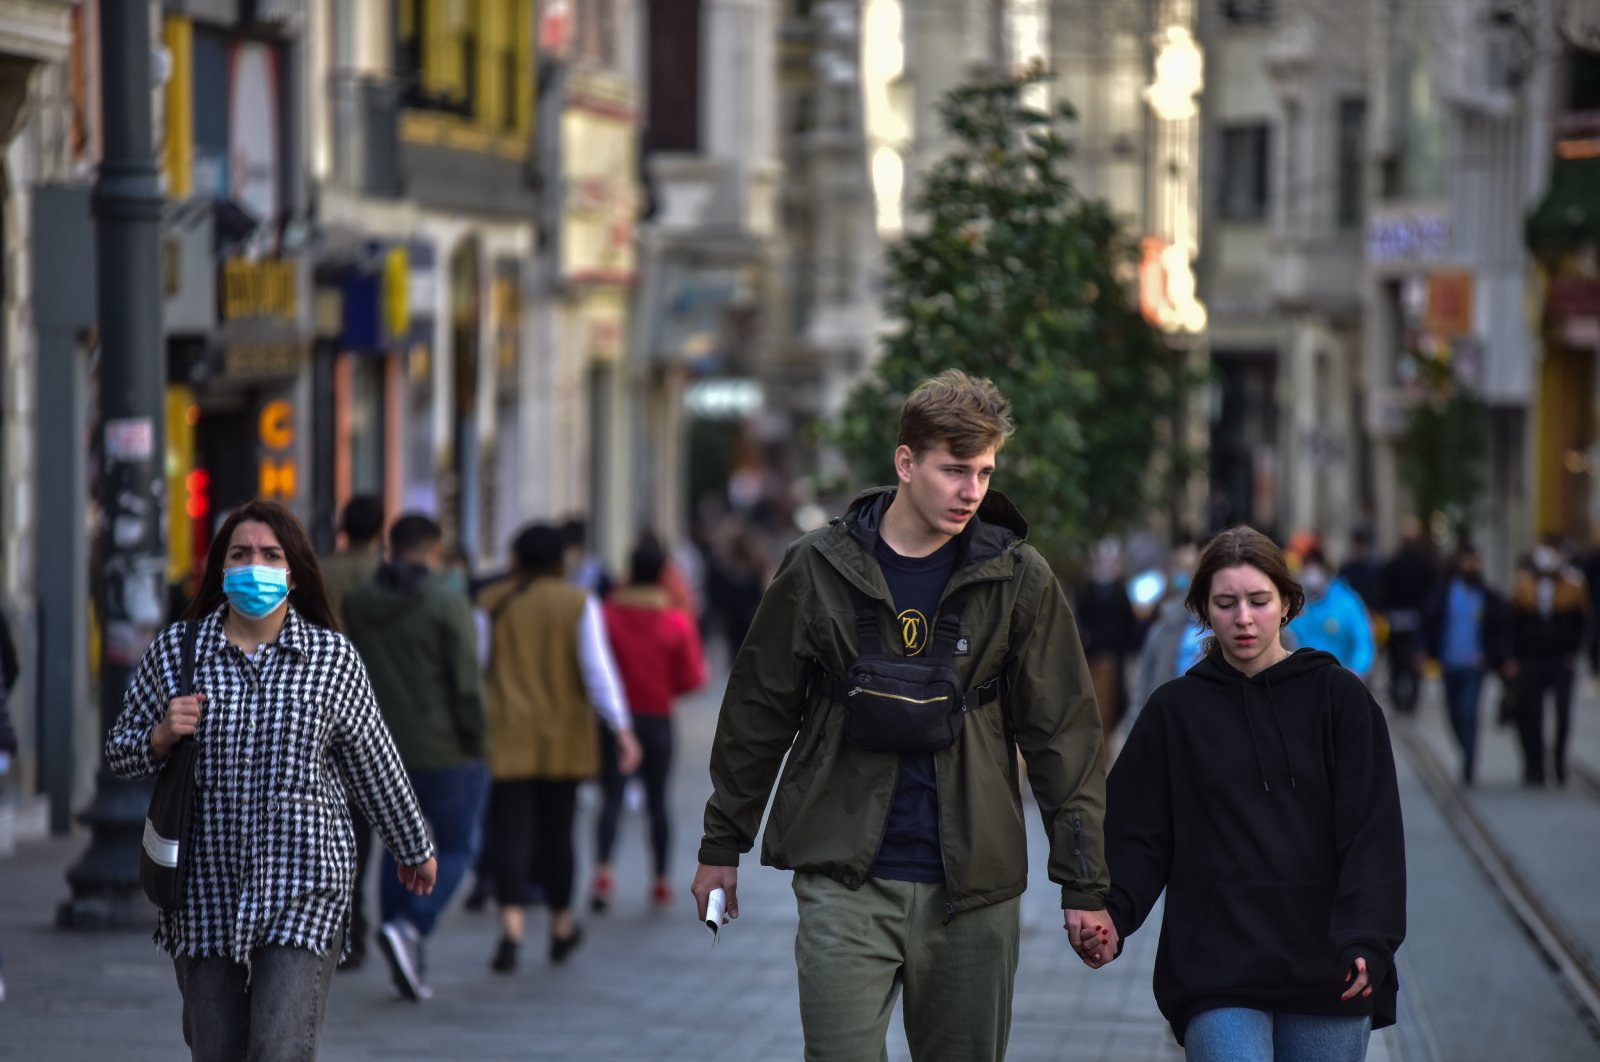 A couple without face masks walk on Istiklal Street near Taksim Square, in Istanbul, Turkey, Nov. 12, 2020. (DHA Photo)